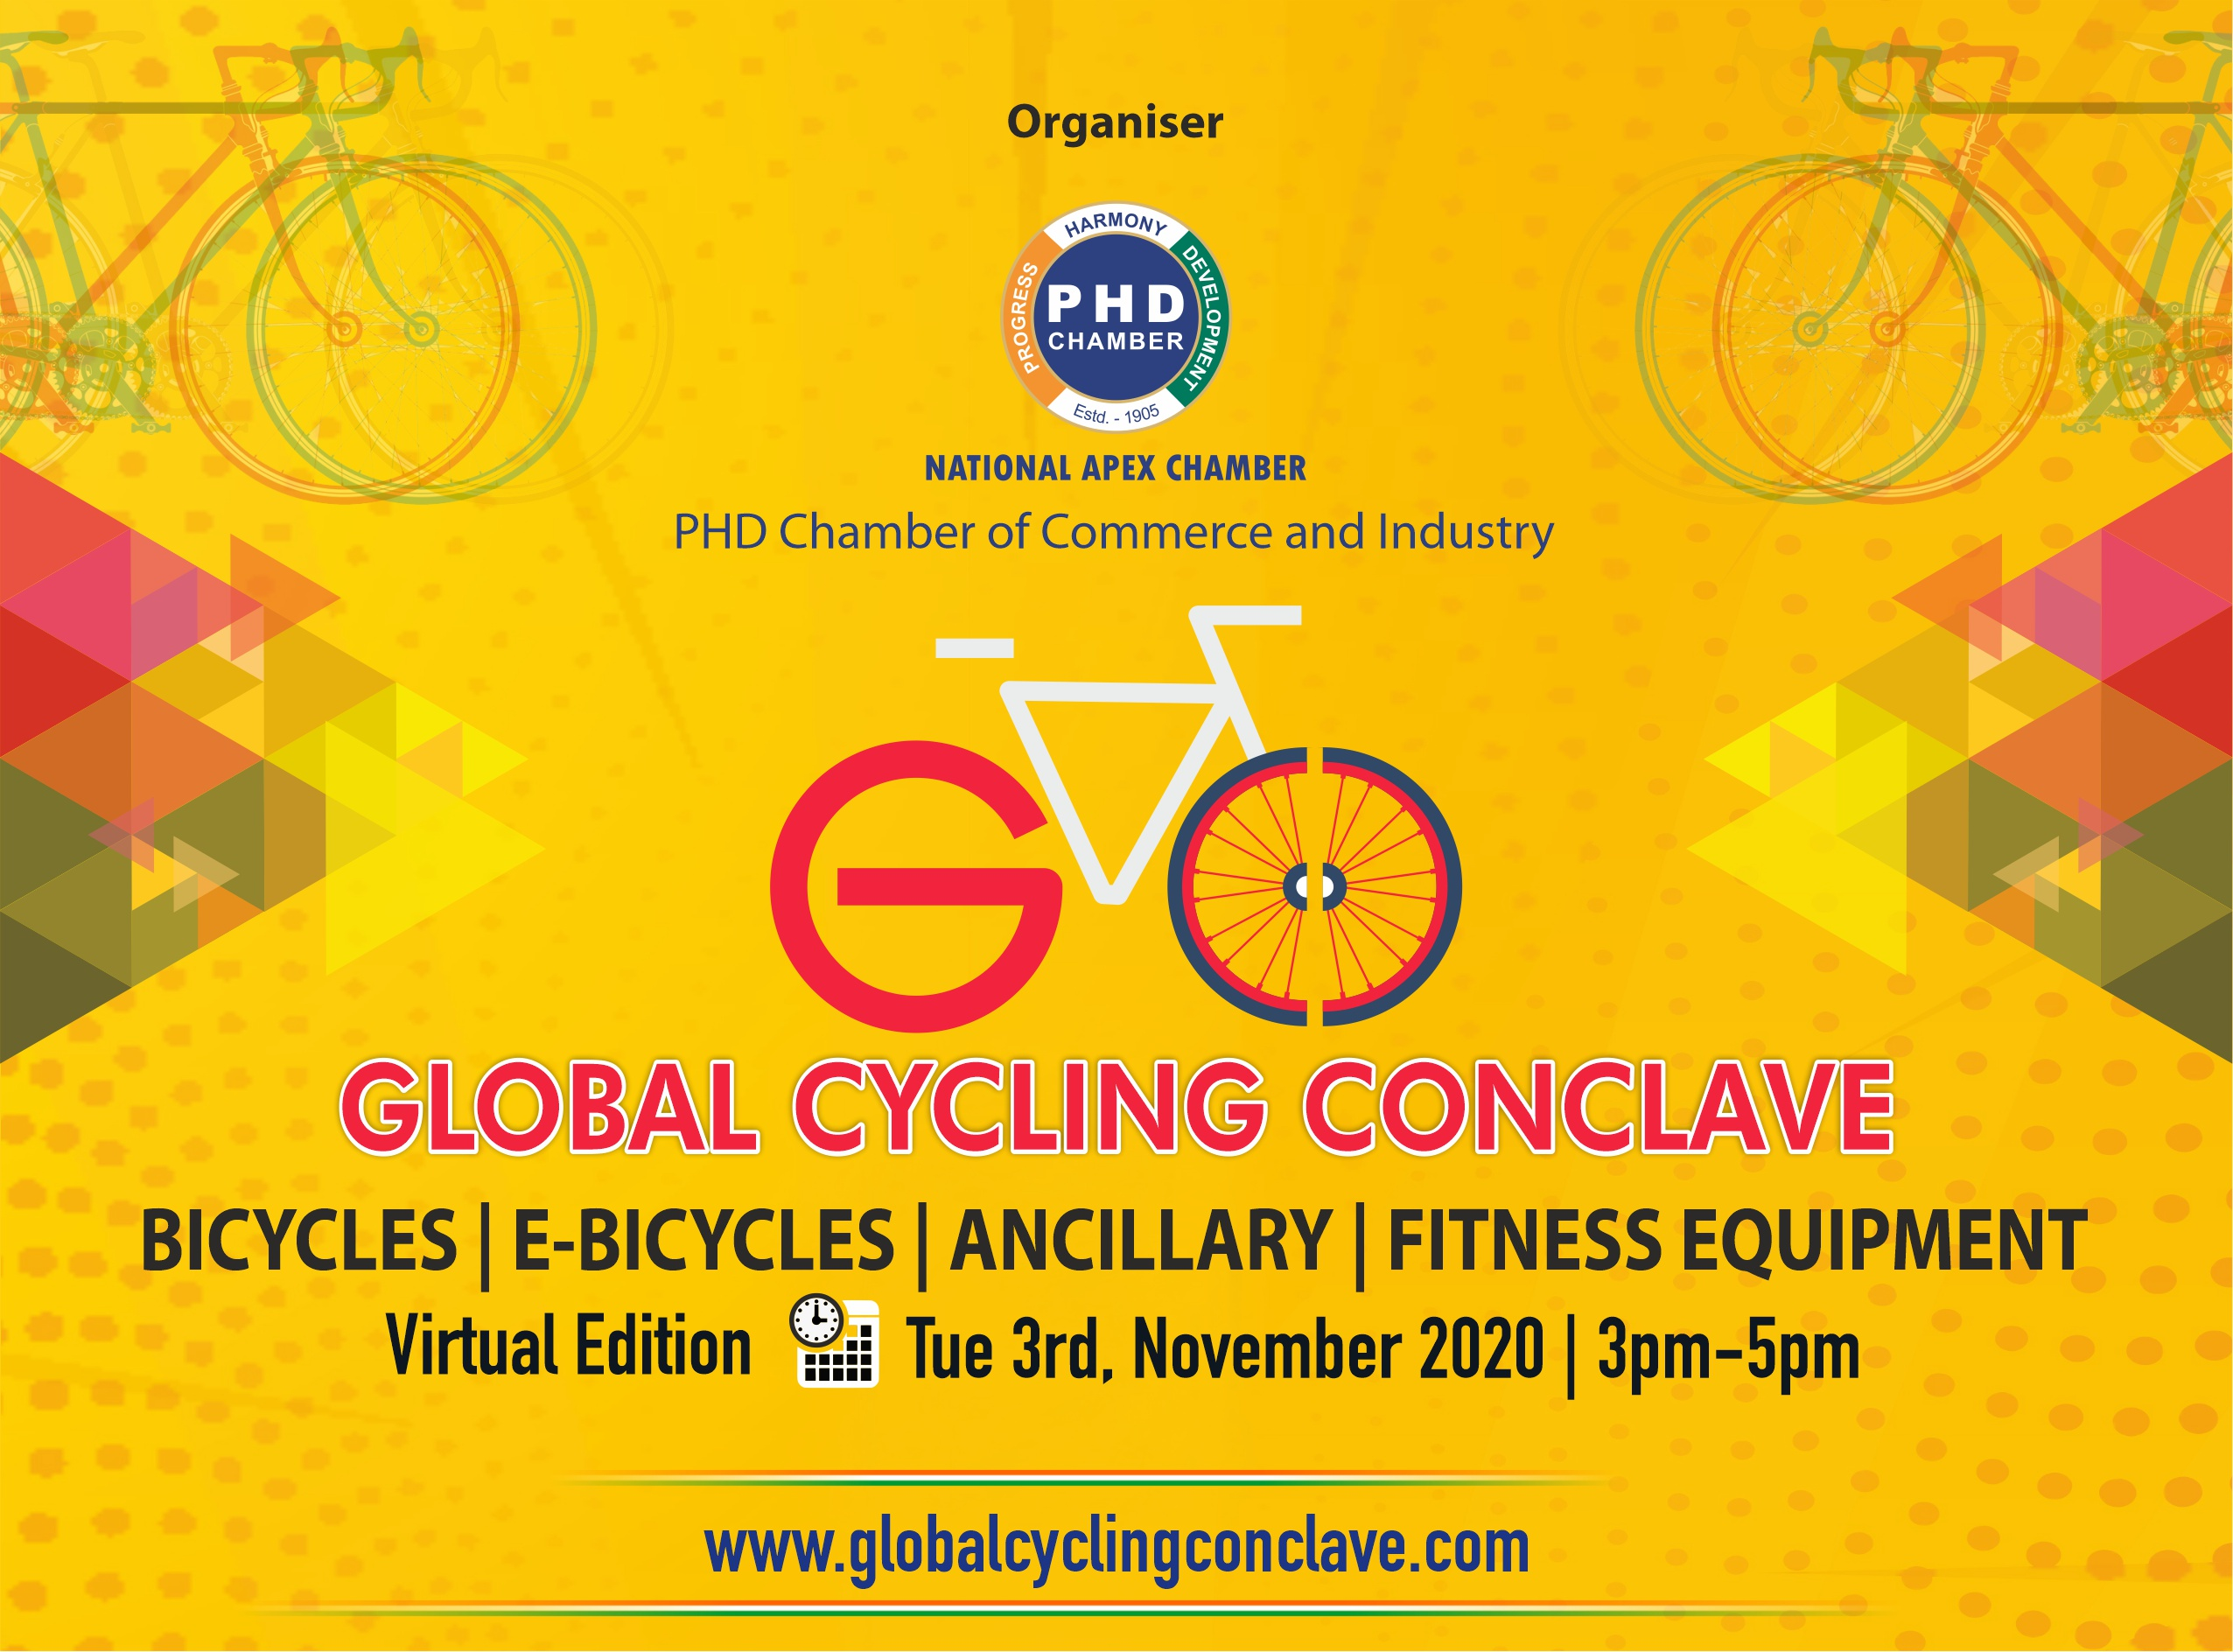 Global Cycling Conclave